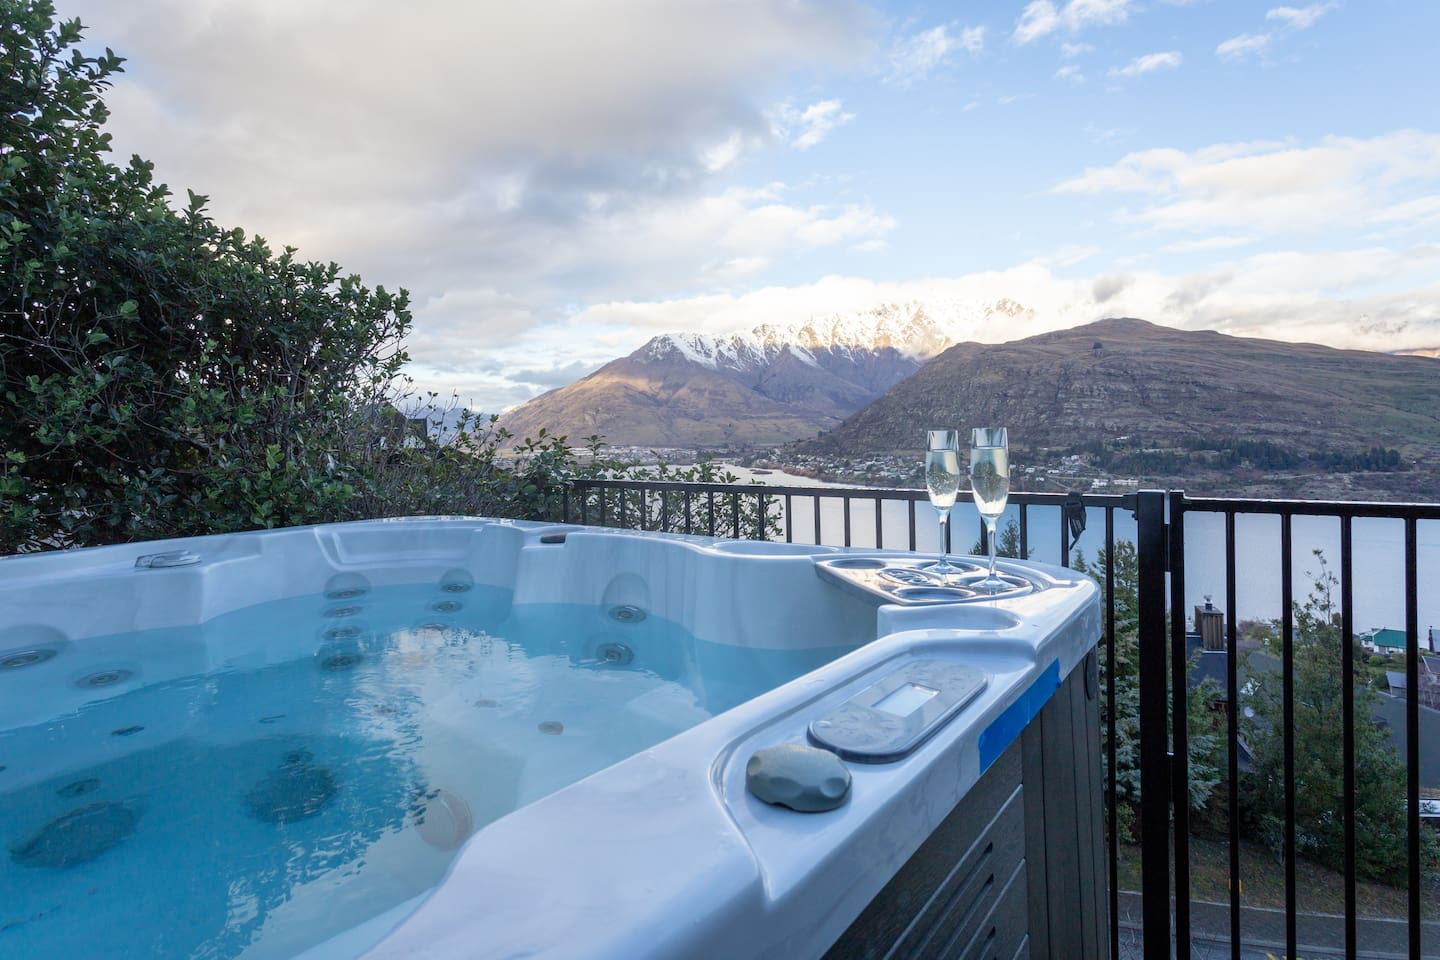 Sunrise over the Remarkables, then Sunset lights on the Remarkables, Magic any time of day from your spa, sofa or bed